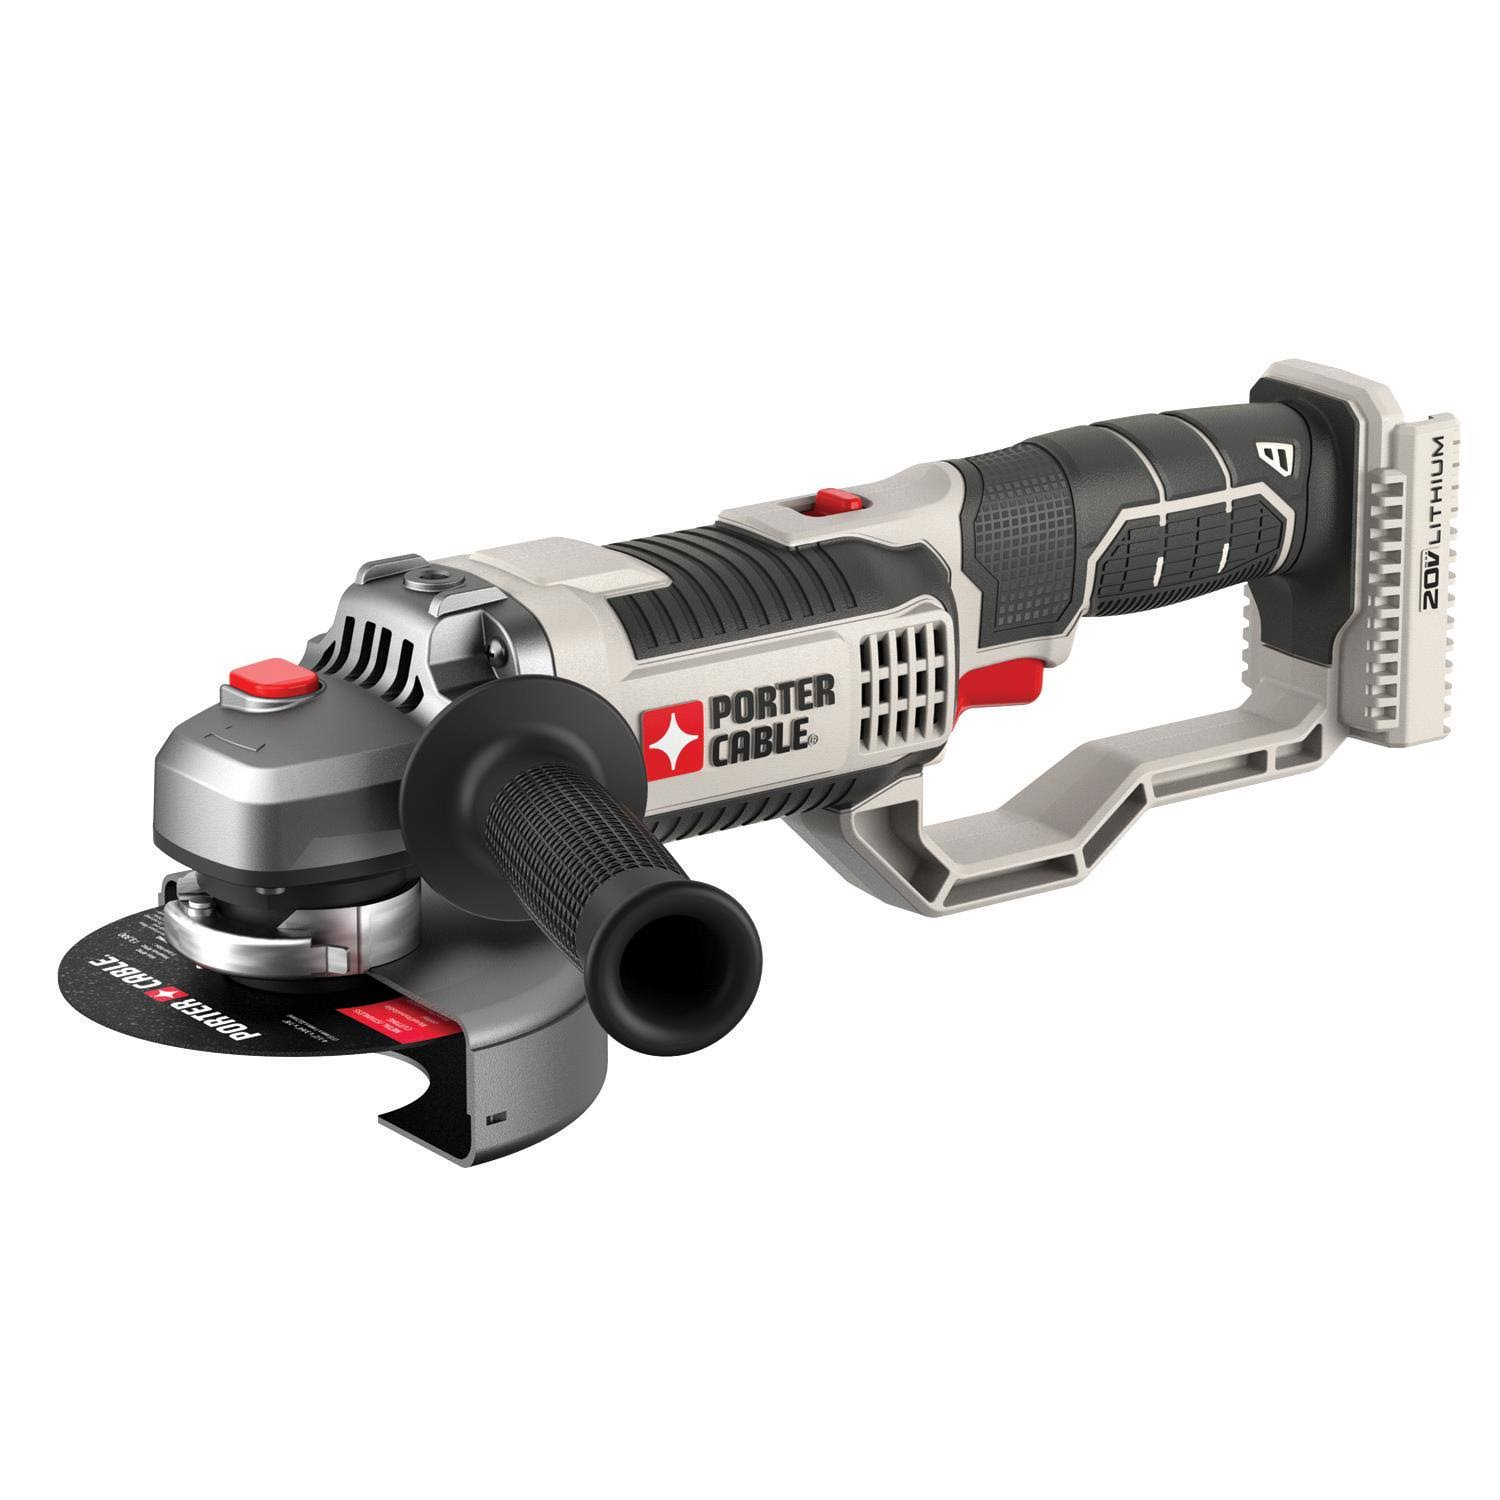 Porter Cable Max Lithium Bare Cut Off Grinder - 20V, 4.5""